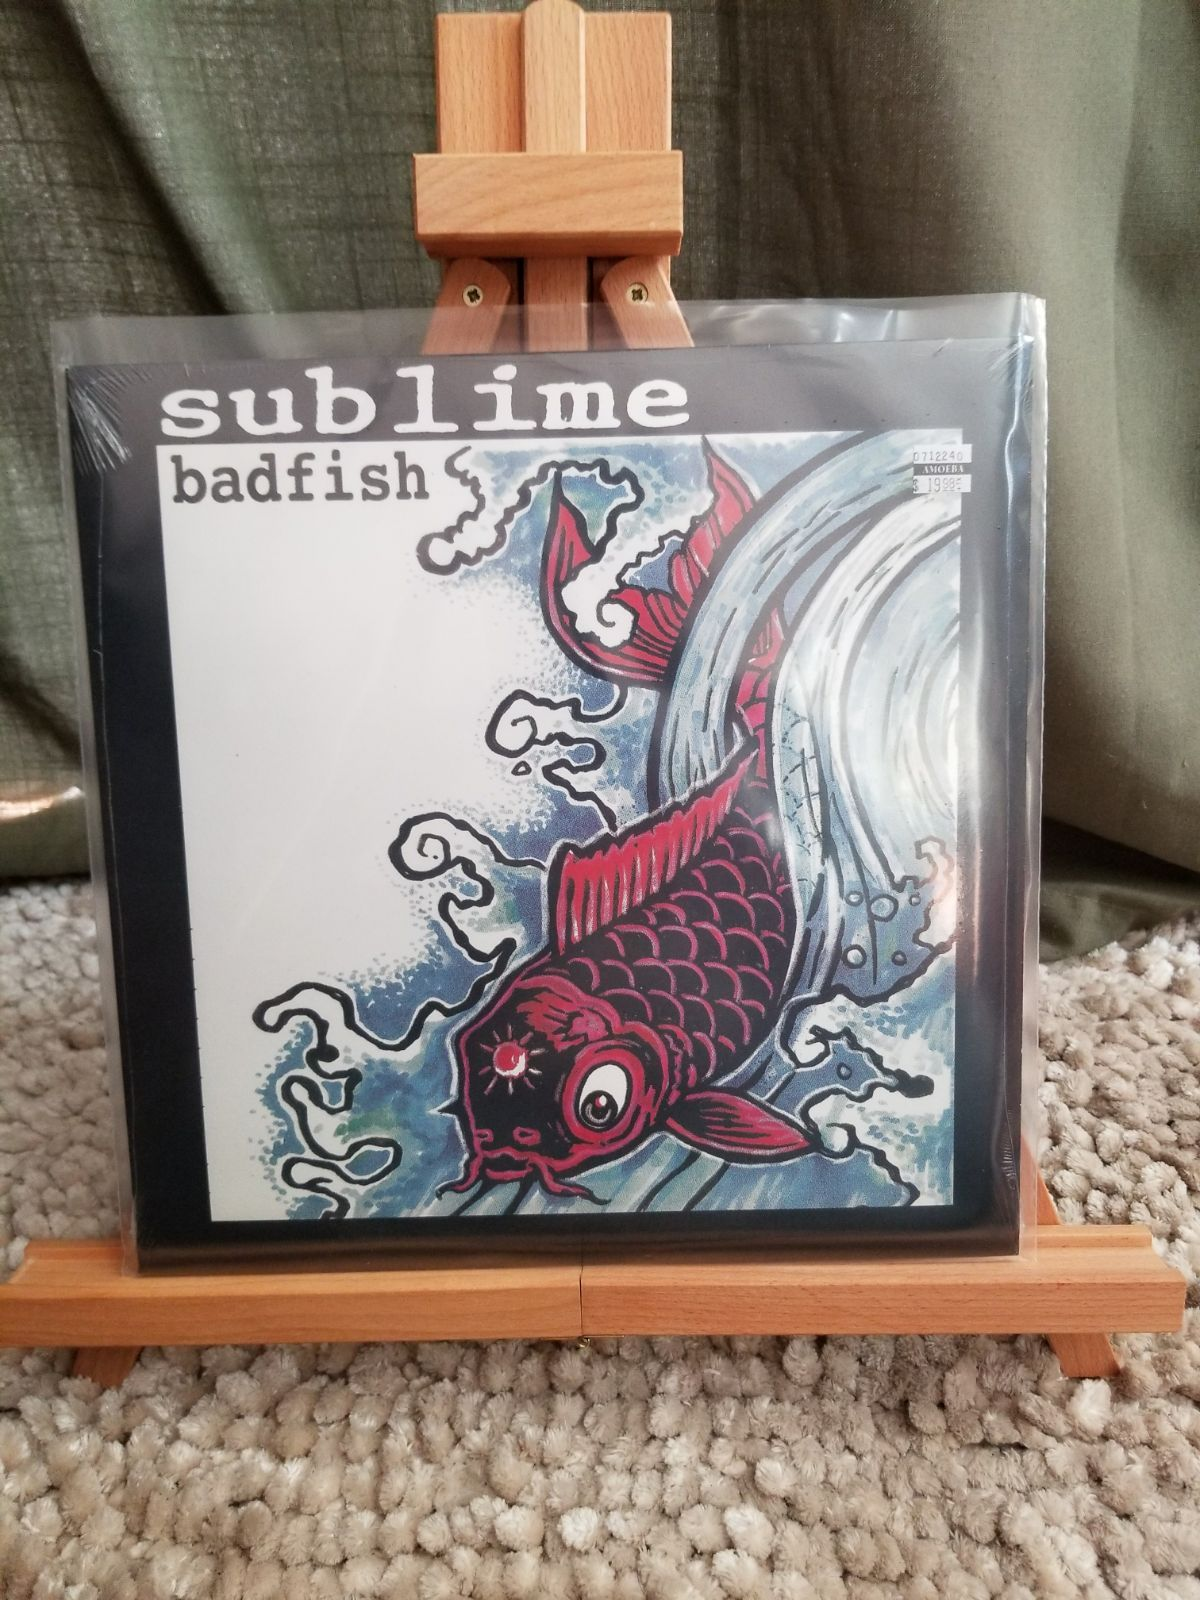 Sublime Badfish Skunk Records Vinyl 12 45 Rpm Ep Limited Edition I Would Also Like To Suggest That You Follow Us B Record Day Run The Jewels Vinyl Records